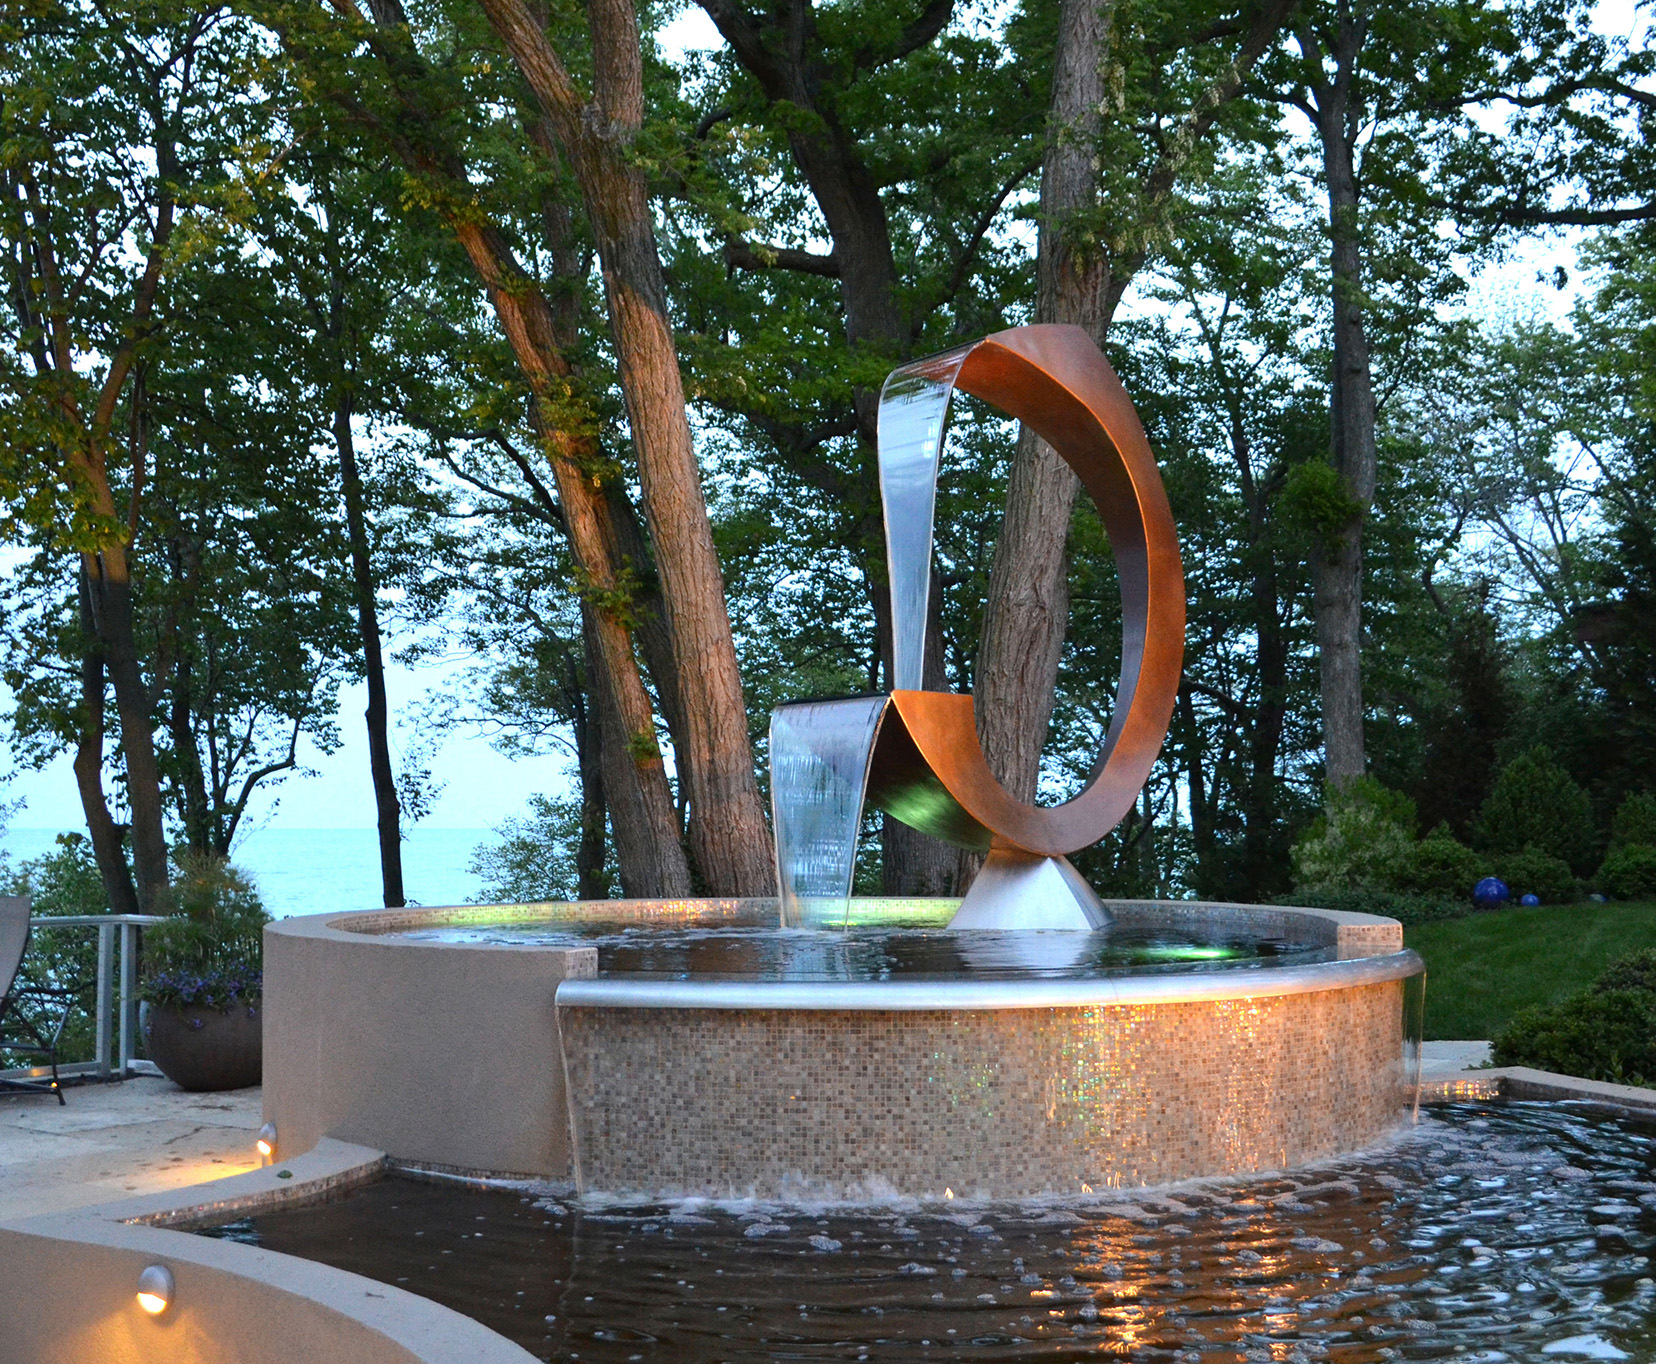 Untitled Water Feature,   Bronze, Stainless Steel, Water,  12' x 7' x 3',  2011 , Private Residence, Highland Park, IL